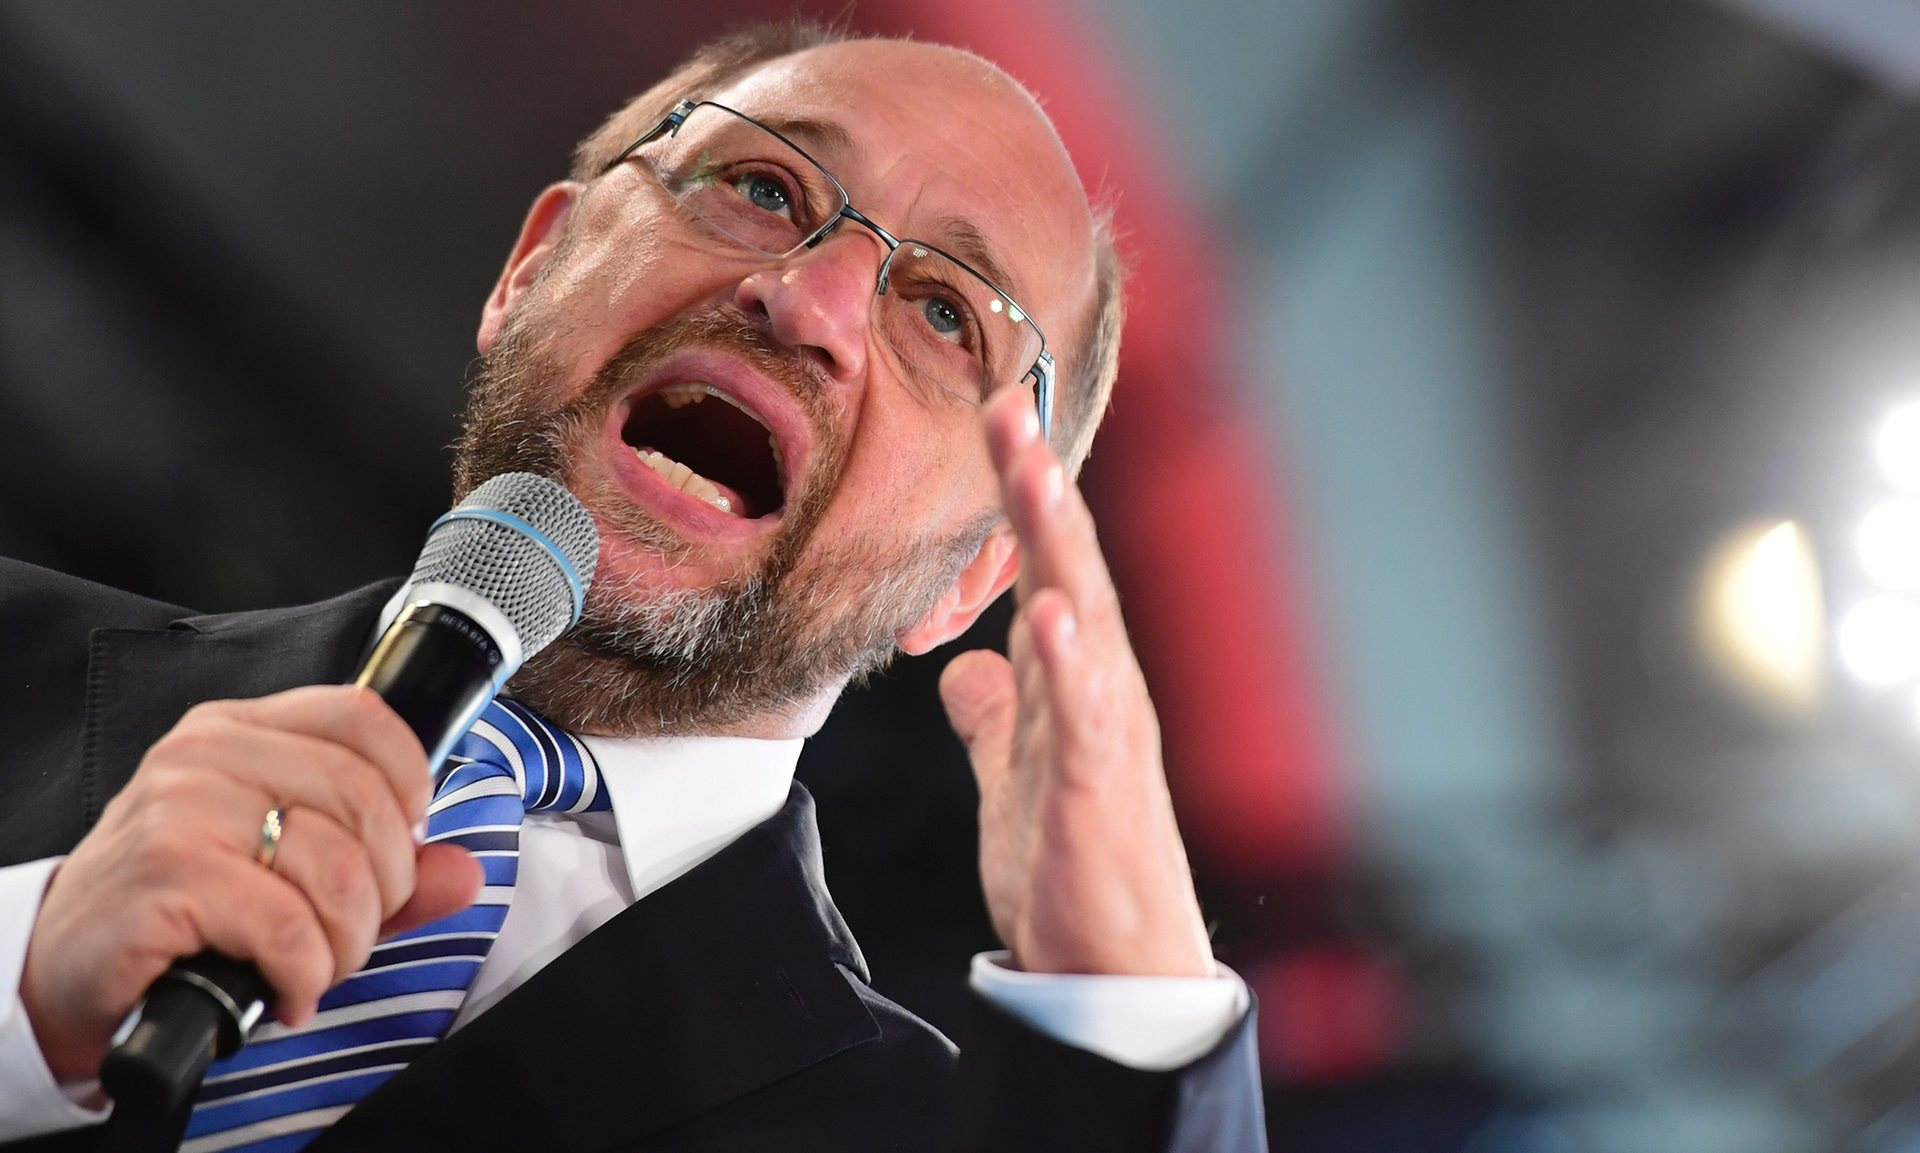 Martin Schulz said there would be consequences from Britain cutting ties with the world's biggest single market. Photograph: John Macdougall/AFP/Getty Images Facebook Twitter Pinterest